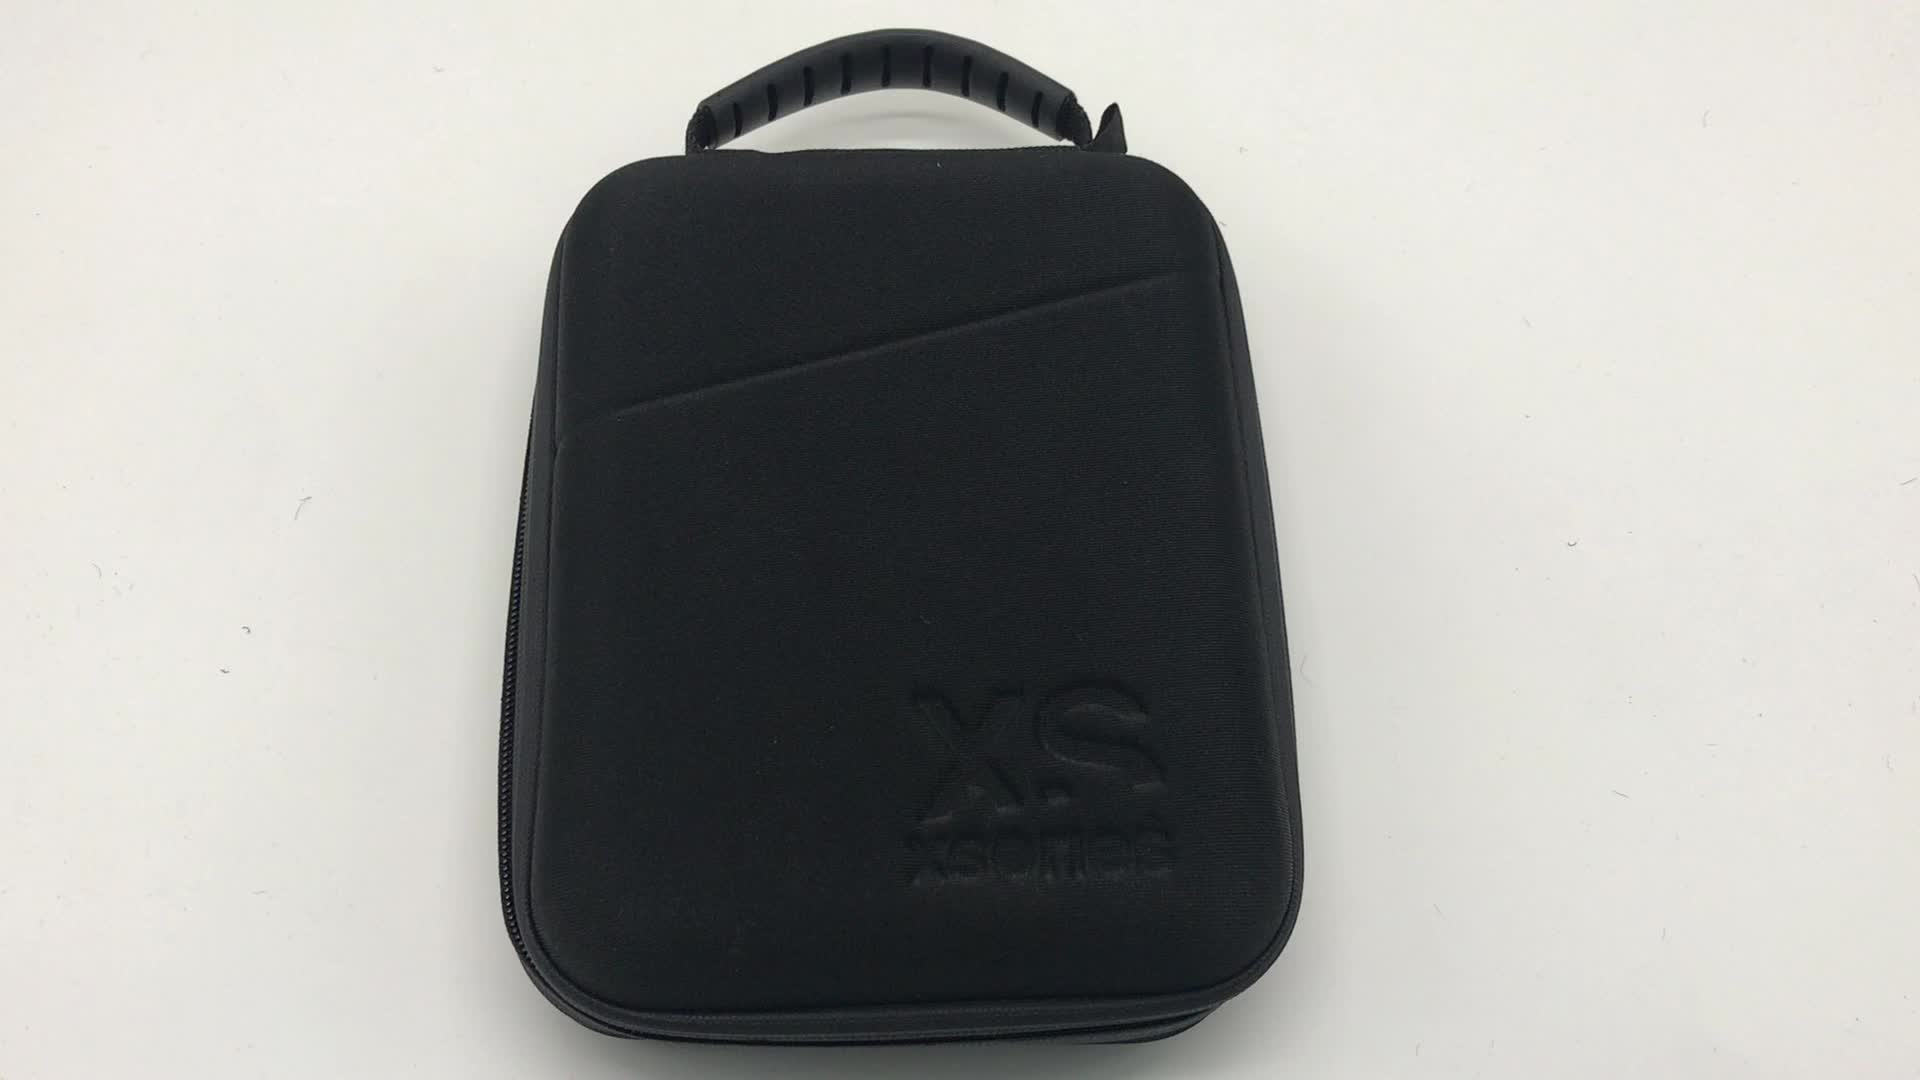 GC -  Black color Hard shell mould EVA CASE with handle